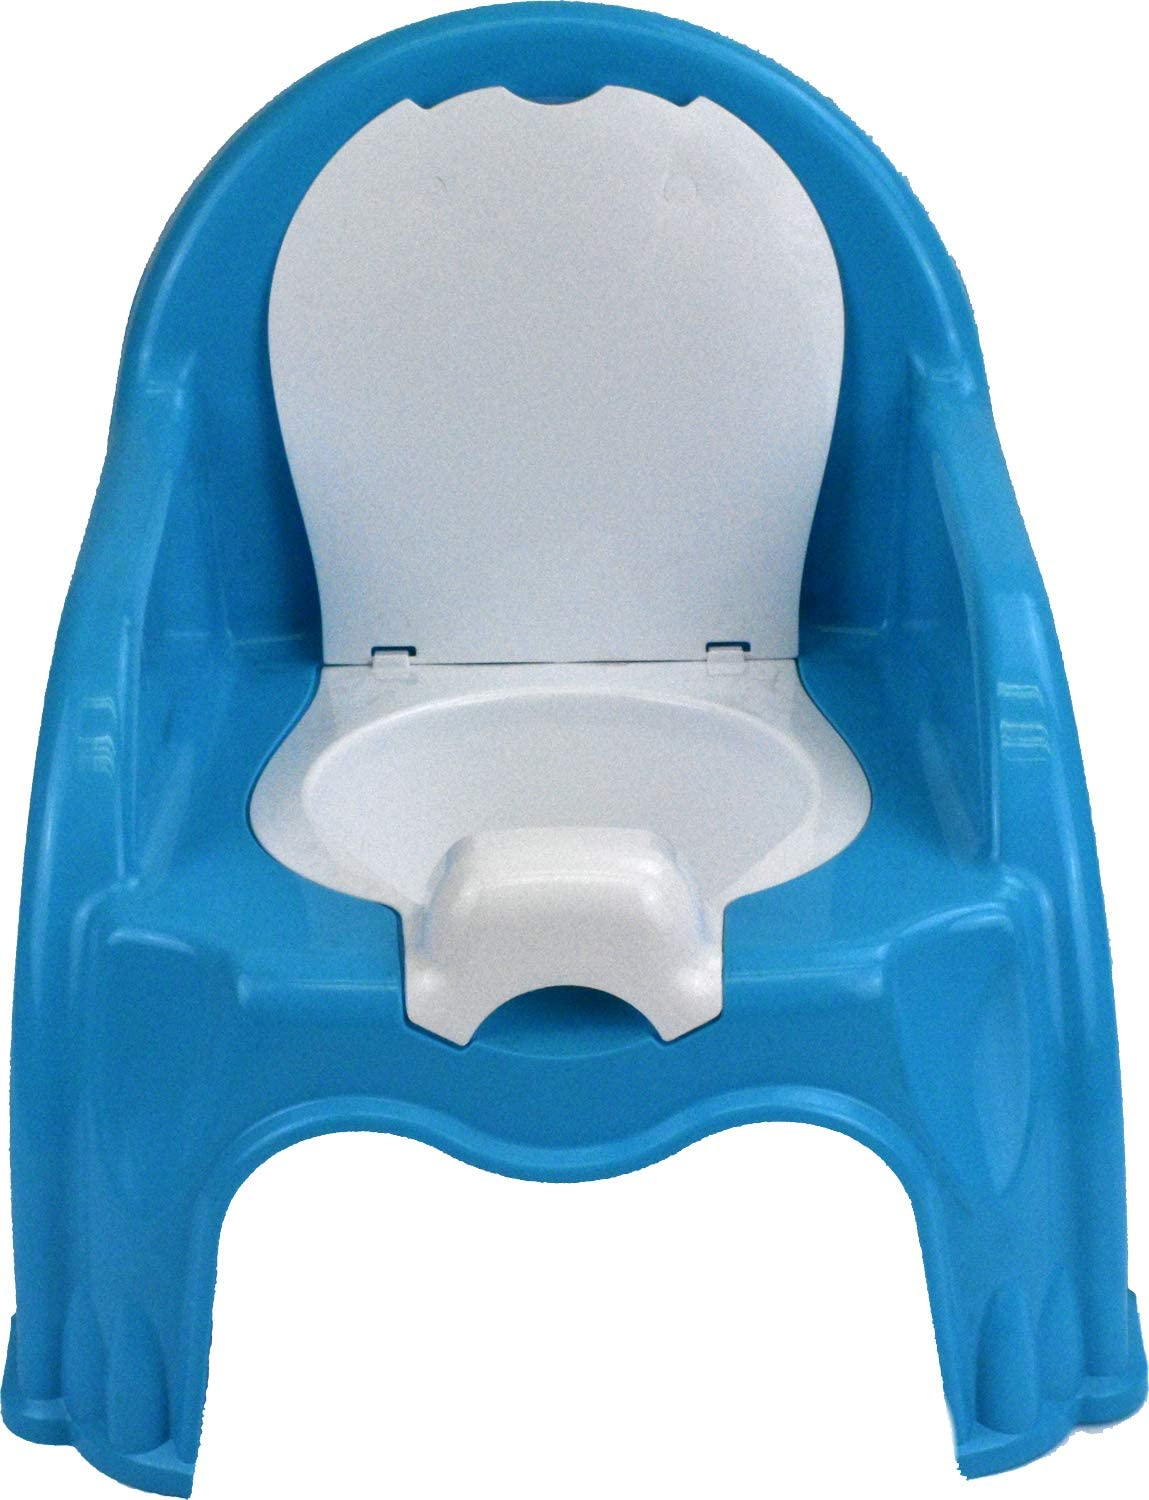 Baby Kid Children Toddlers Potty Toilet Training Chair Seat Blue